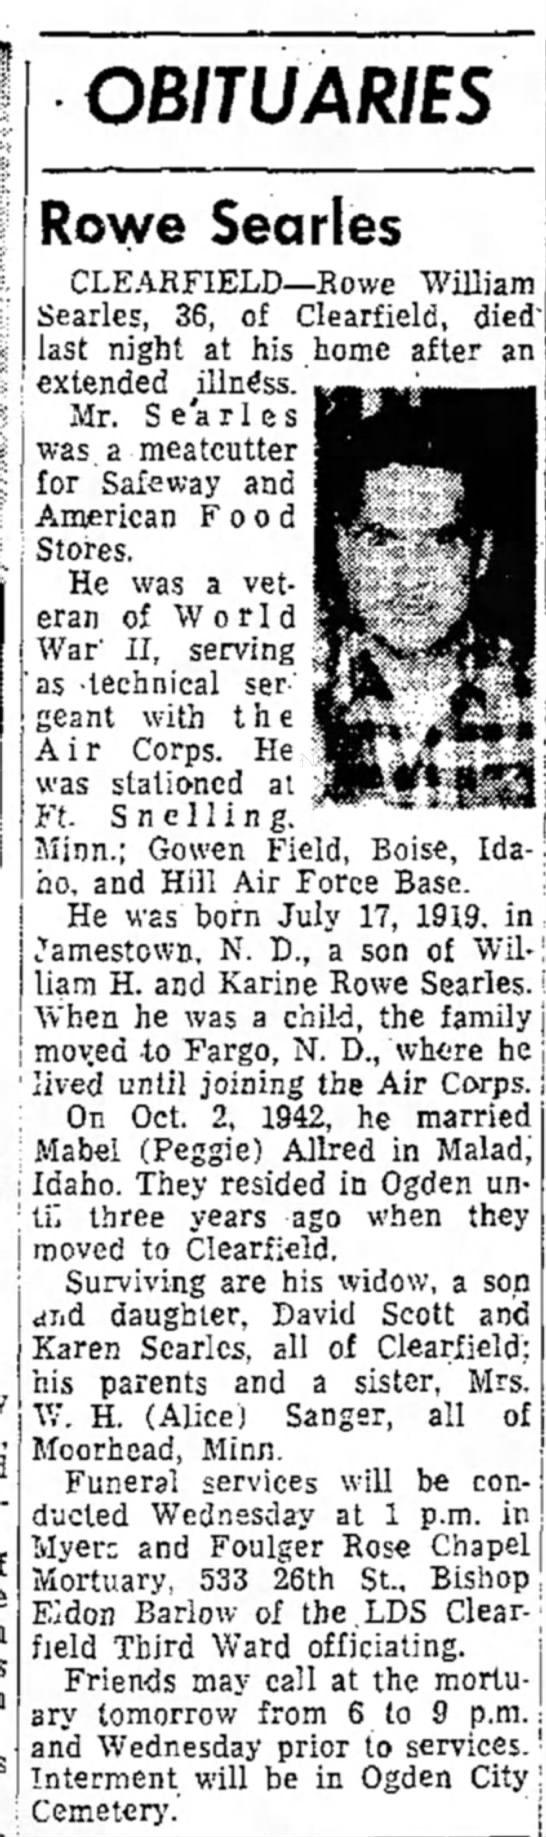 Rowe Searles 1st husband of Mabel Allred                - OBI7U ARIES Rowe Searles CLEARFIELD—Rowe...